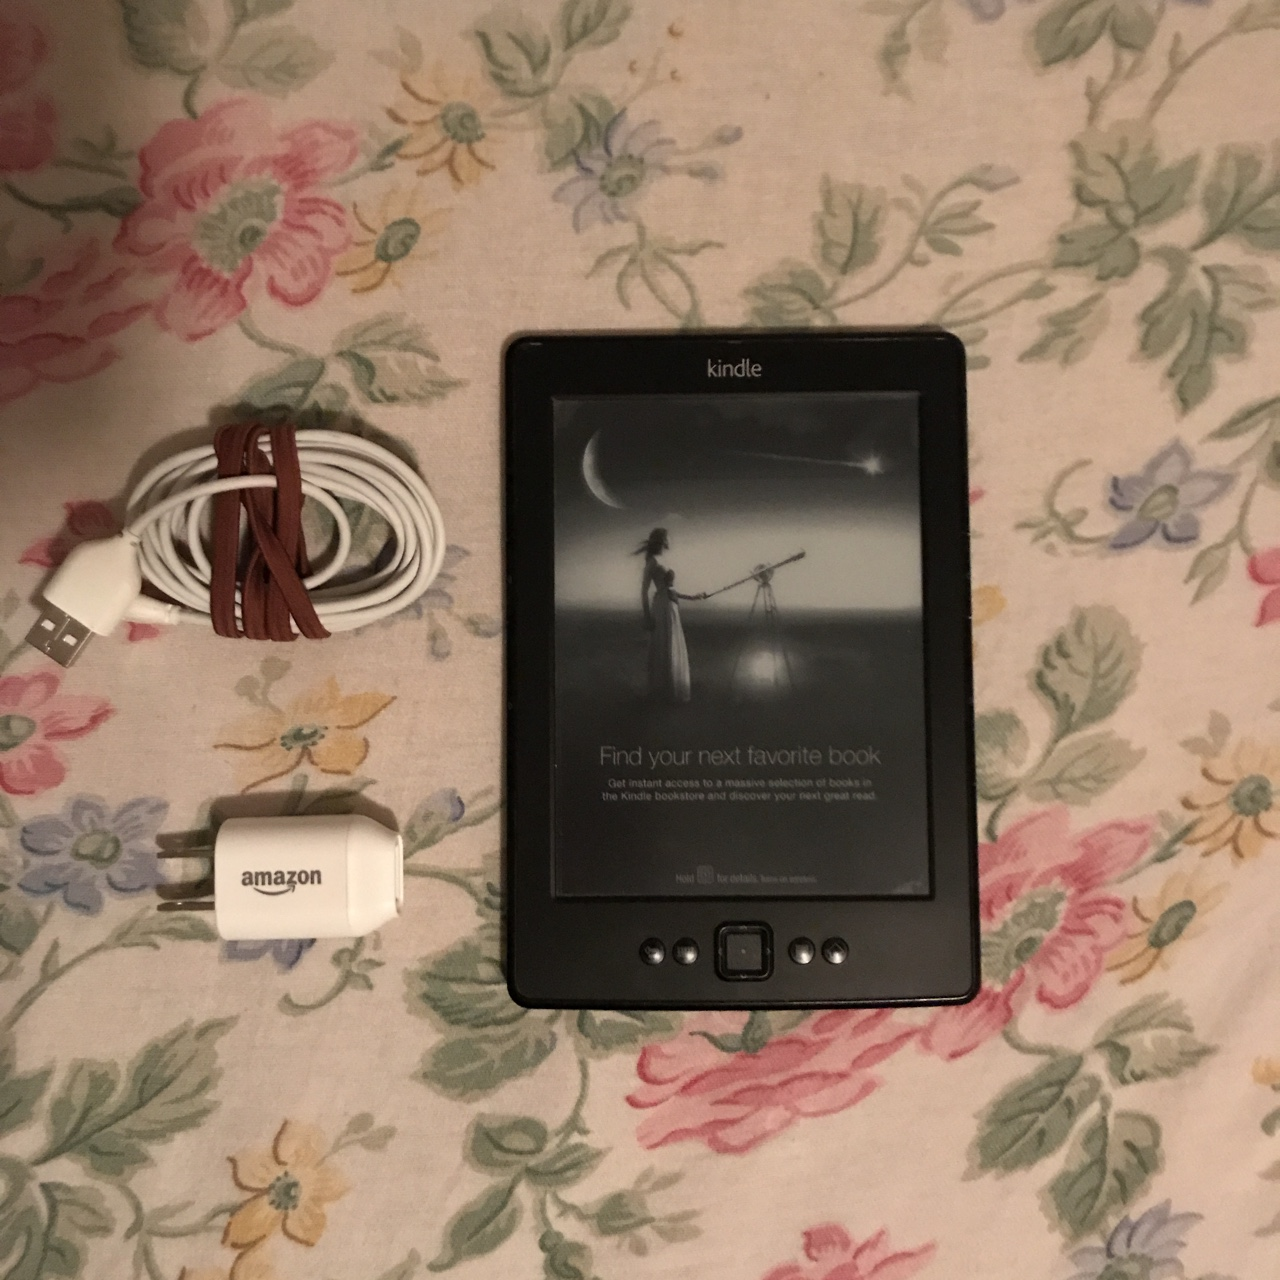 Amazon Kindle D01100  Black  Comes with charger and